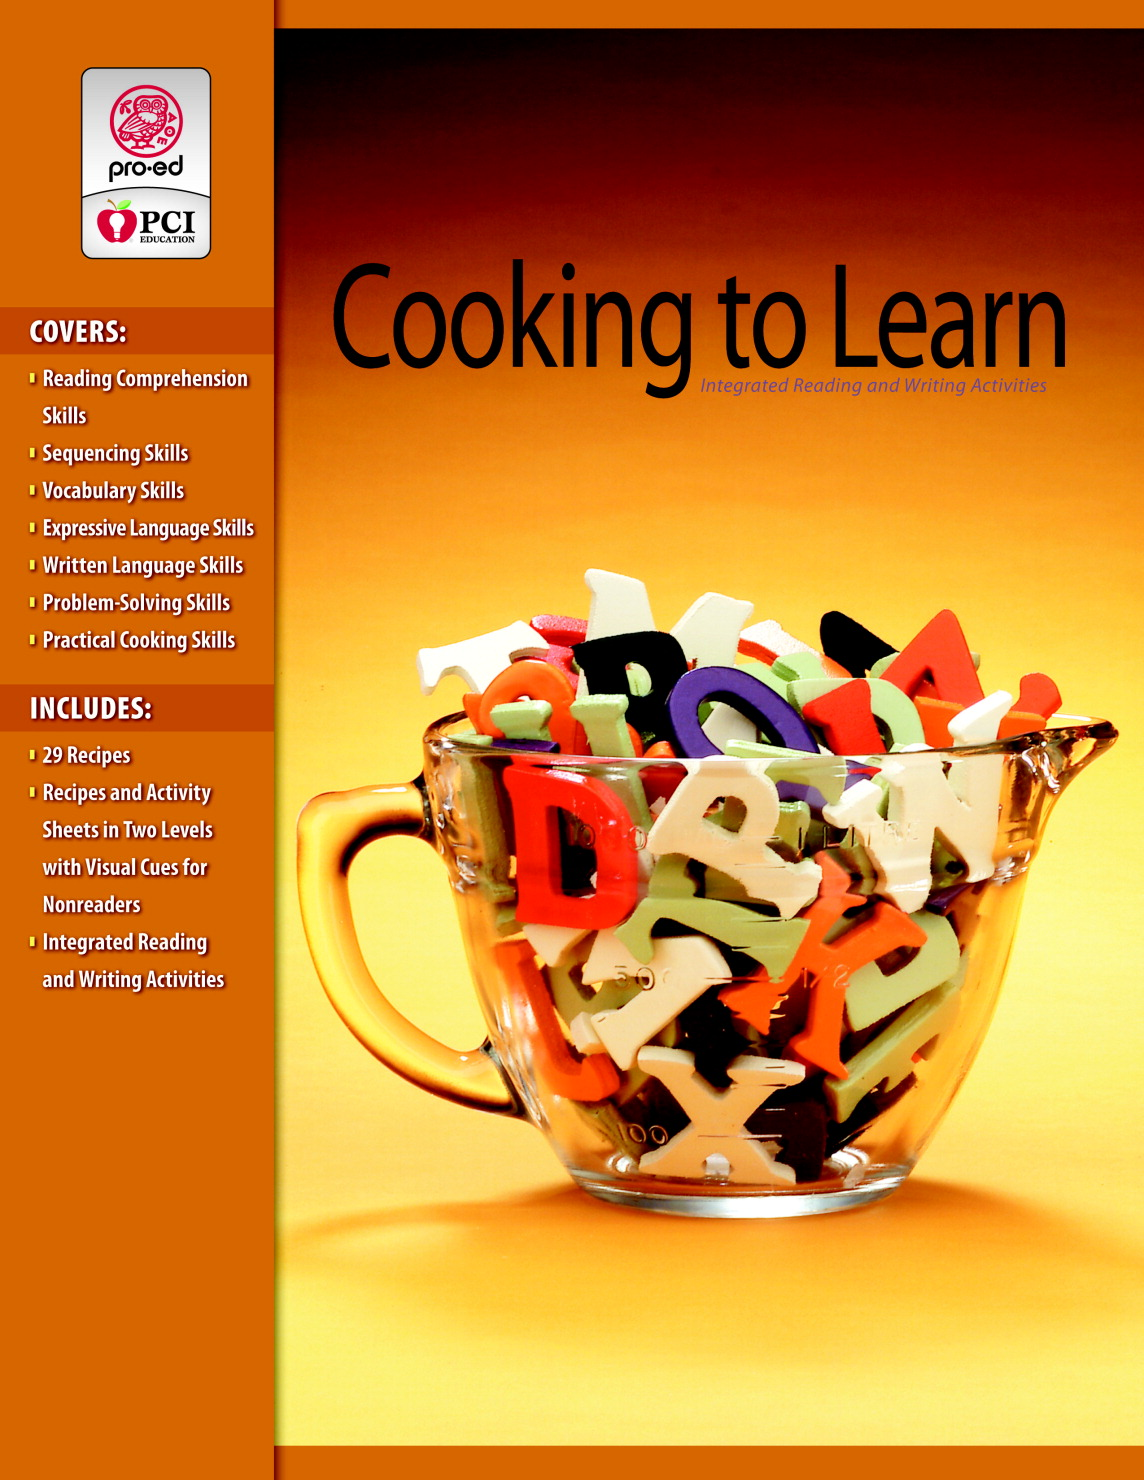 Cooking to learn binders